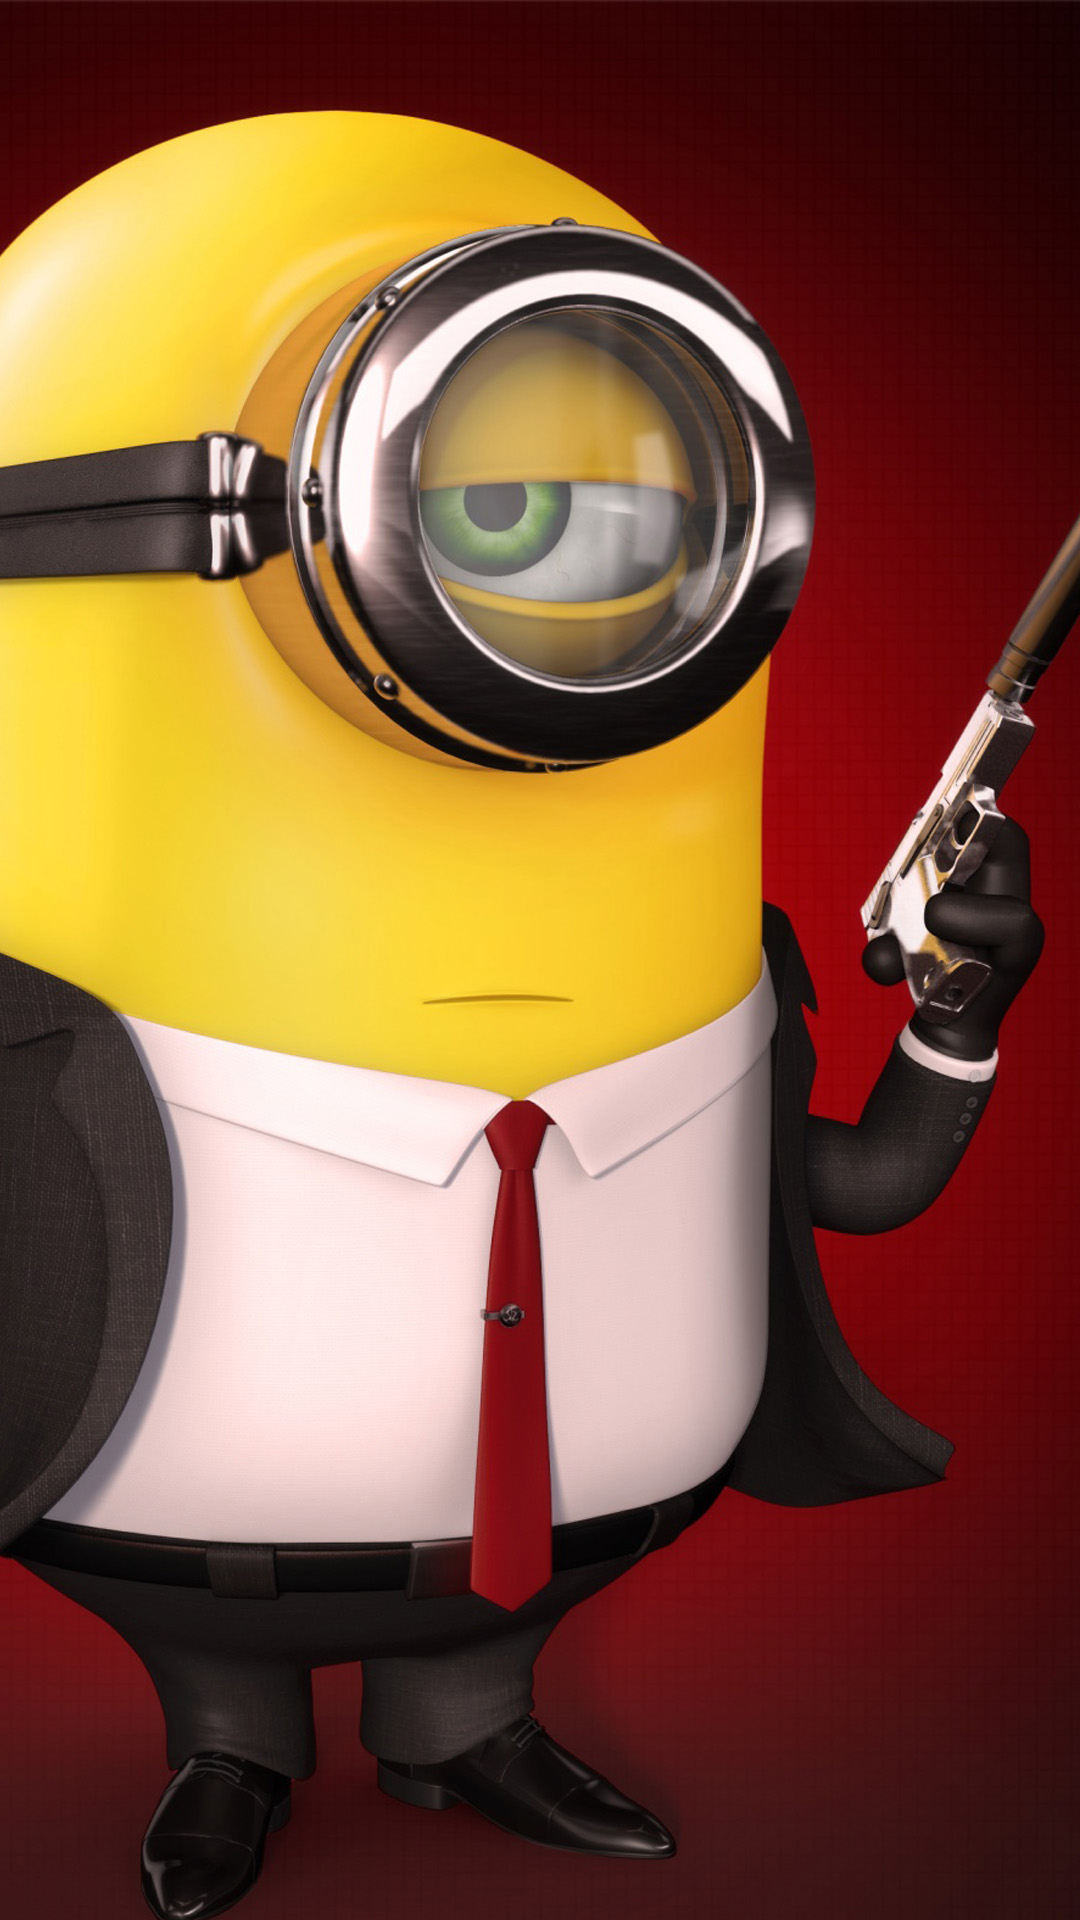 Minions Hd Wallpapers For Android Posted By Zoey Walker